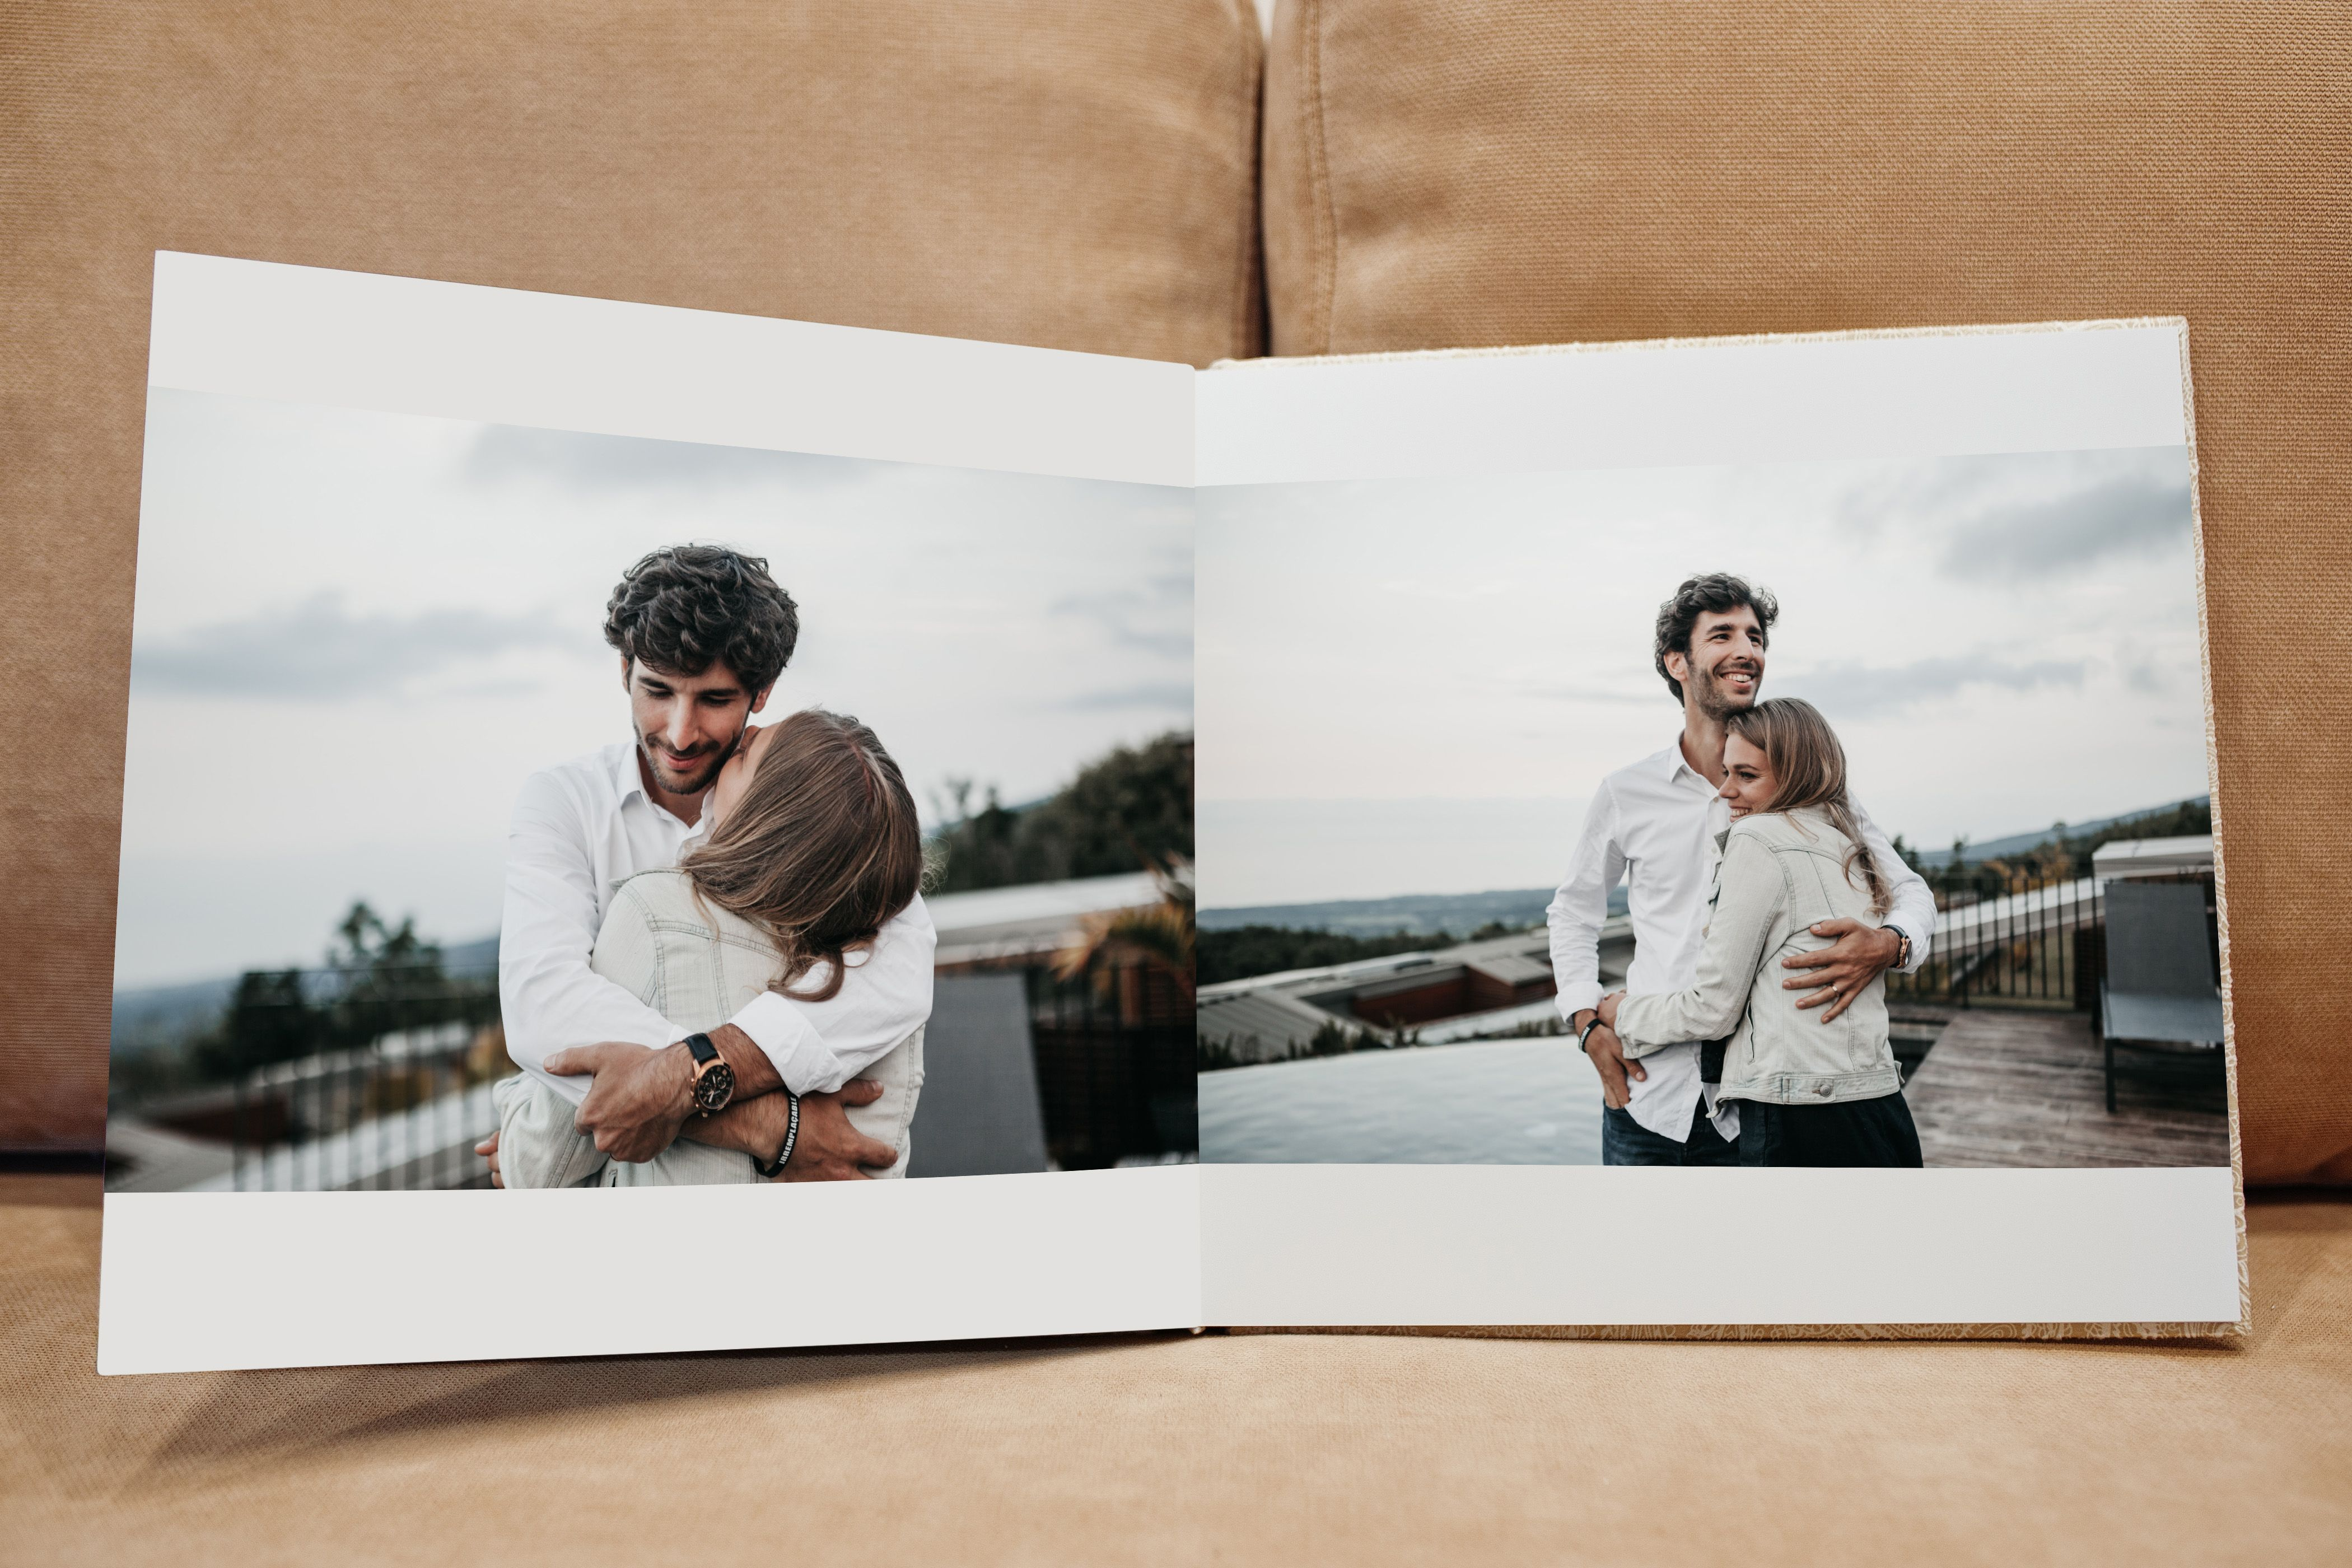 Mimeo Photos softcover photobooks are your solution to a modern day photo album